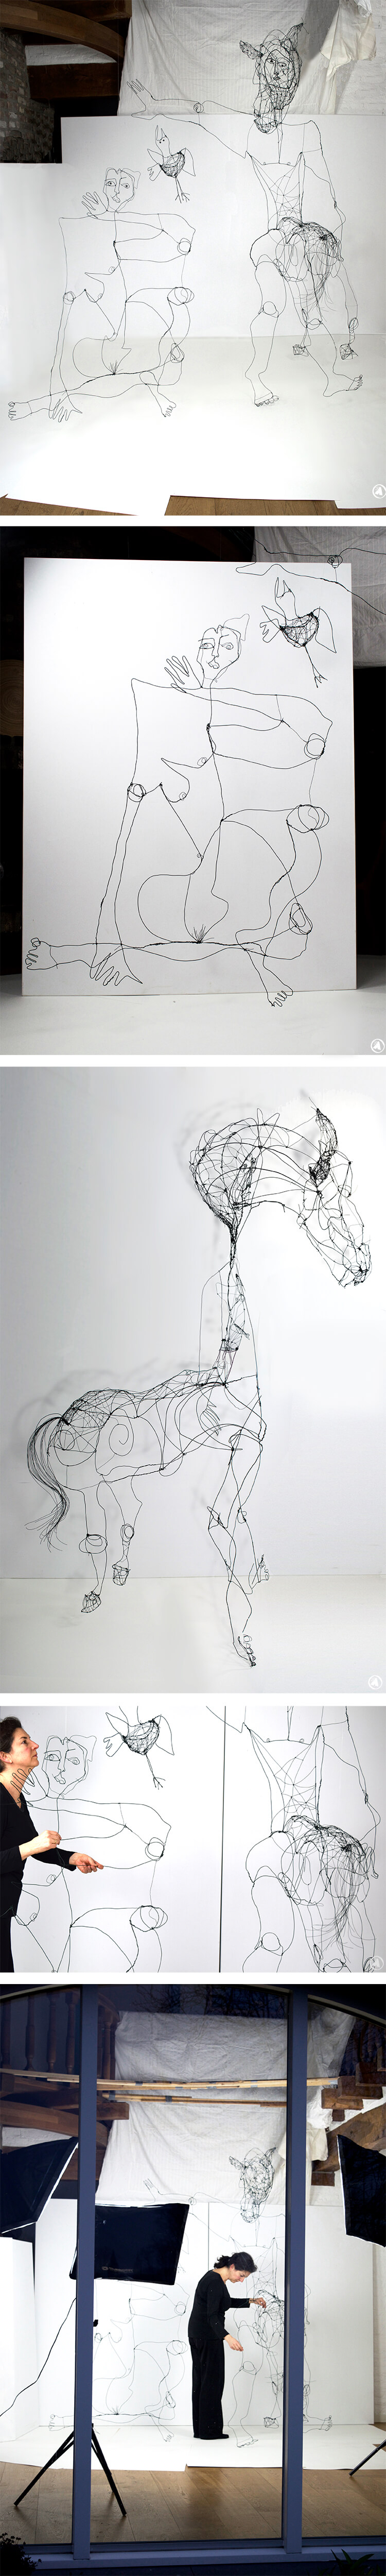 Ángeles Nieto - Picasso - Wire Construction